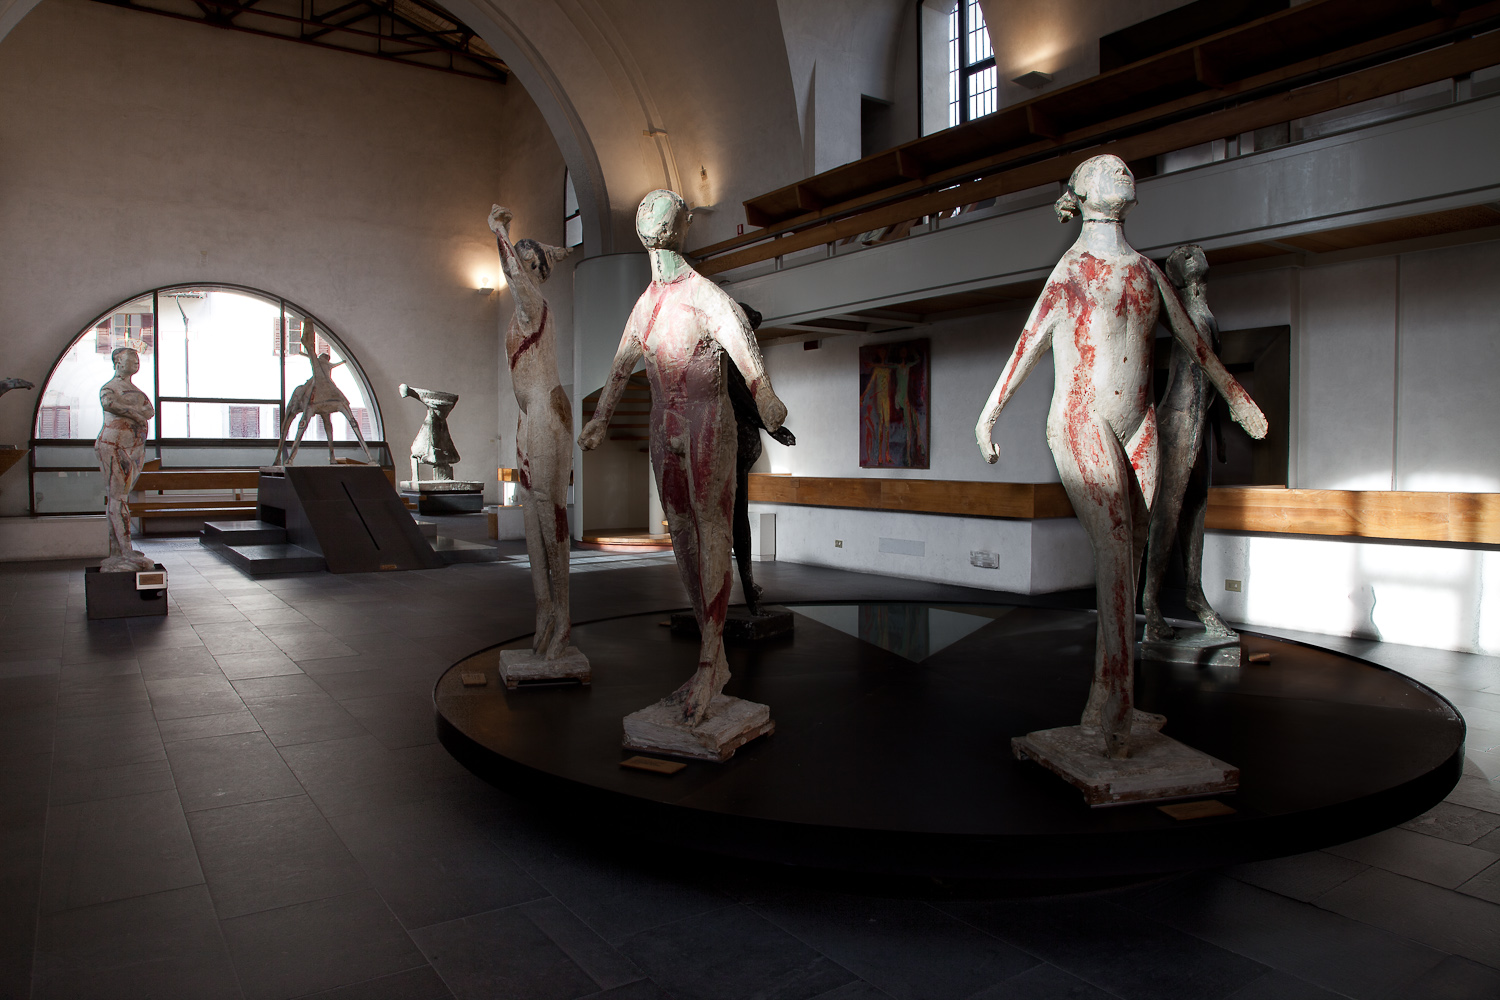 https://illum.it/wp-content/uploads/2019/06/Museo-Marino-Marini-19-1.jpg